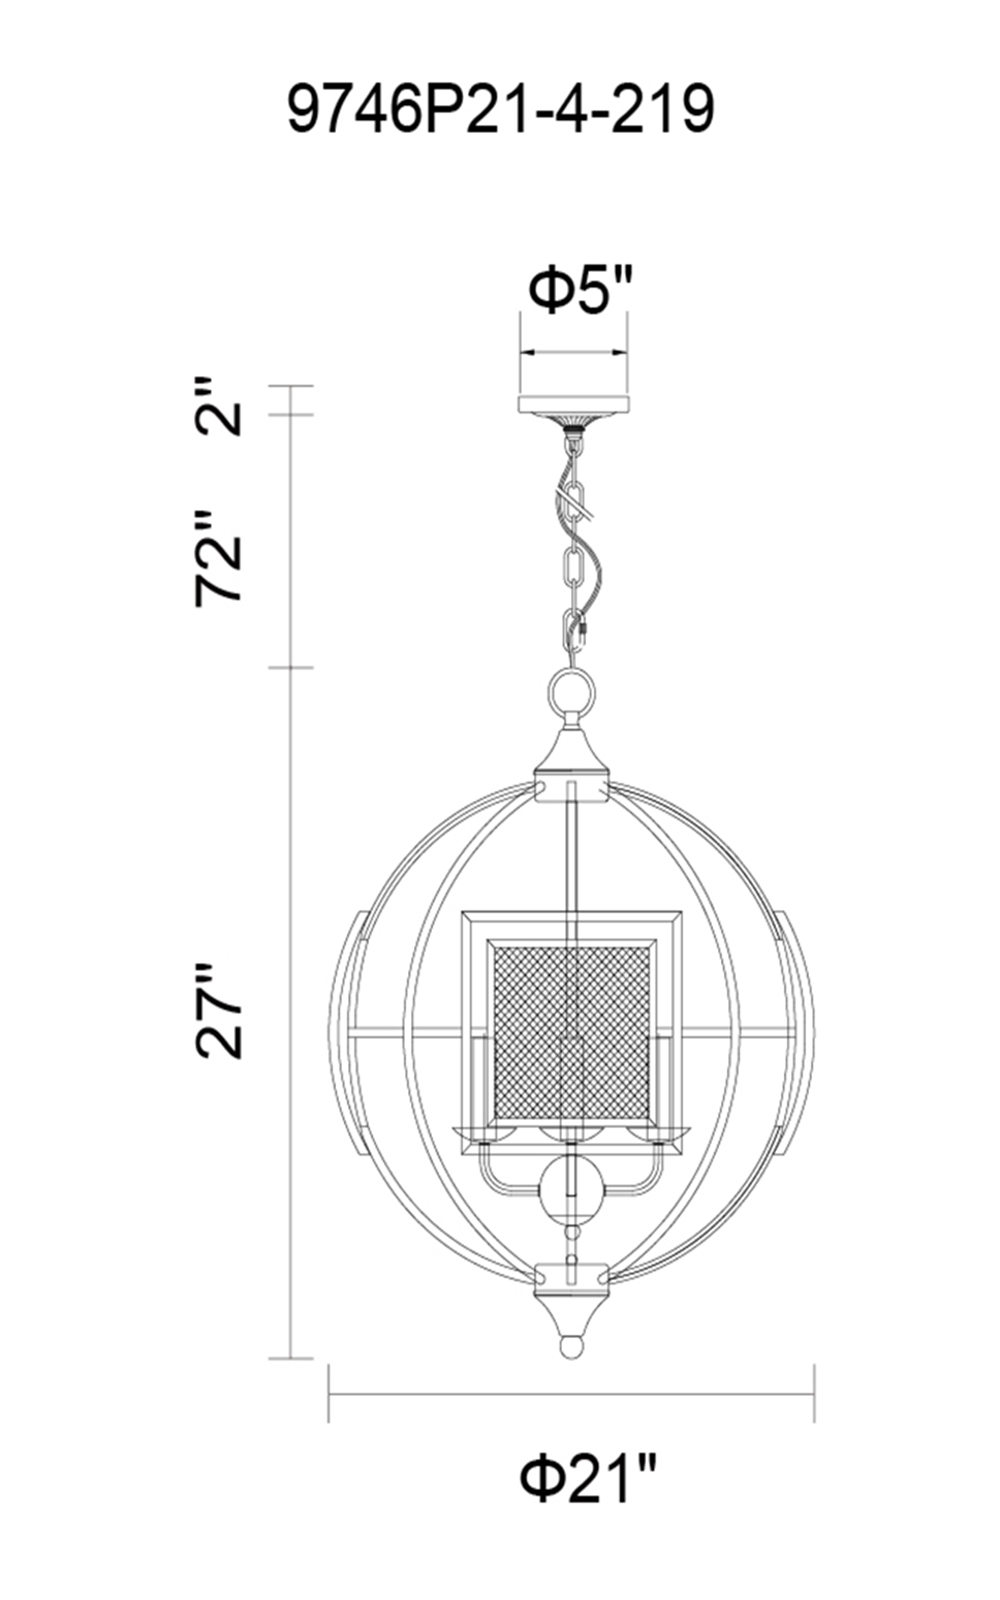 CWI Lighting Alistaire 4 Light Chandelier With Reddish Black Finish Model: 9746P21-4-219 Line Drawing